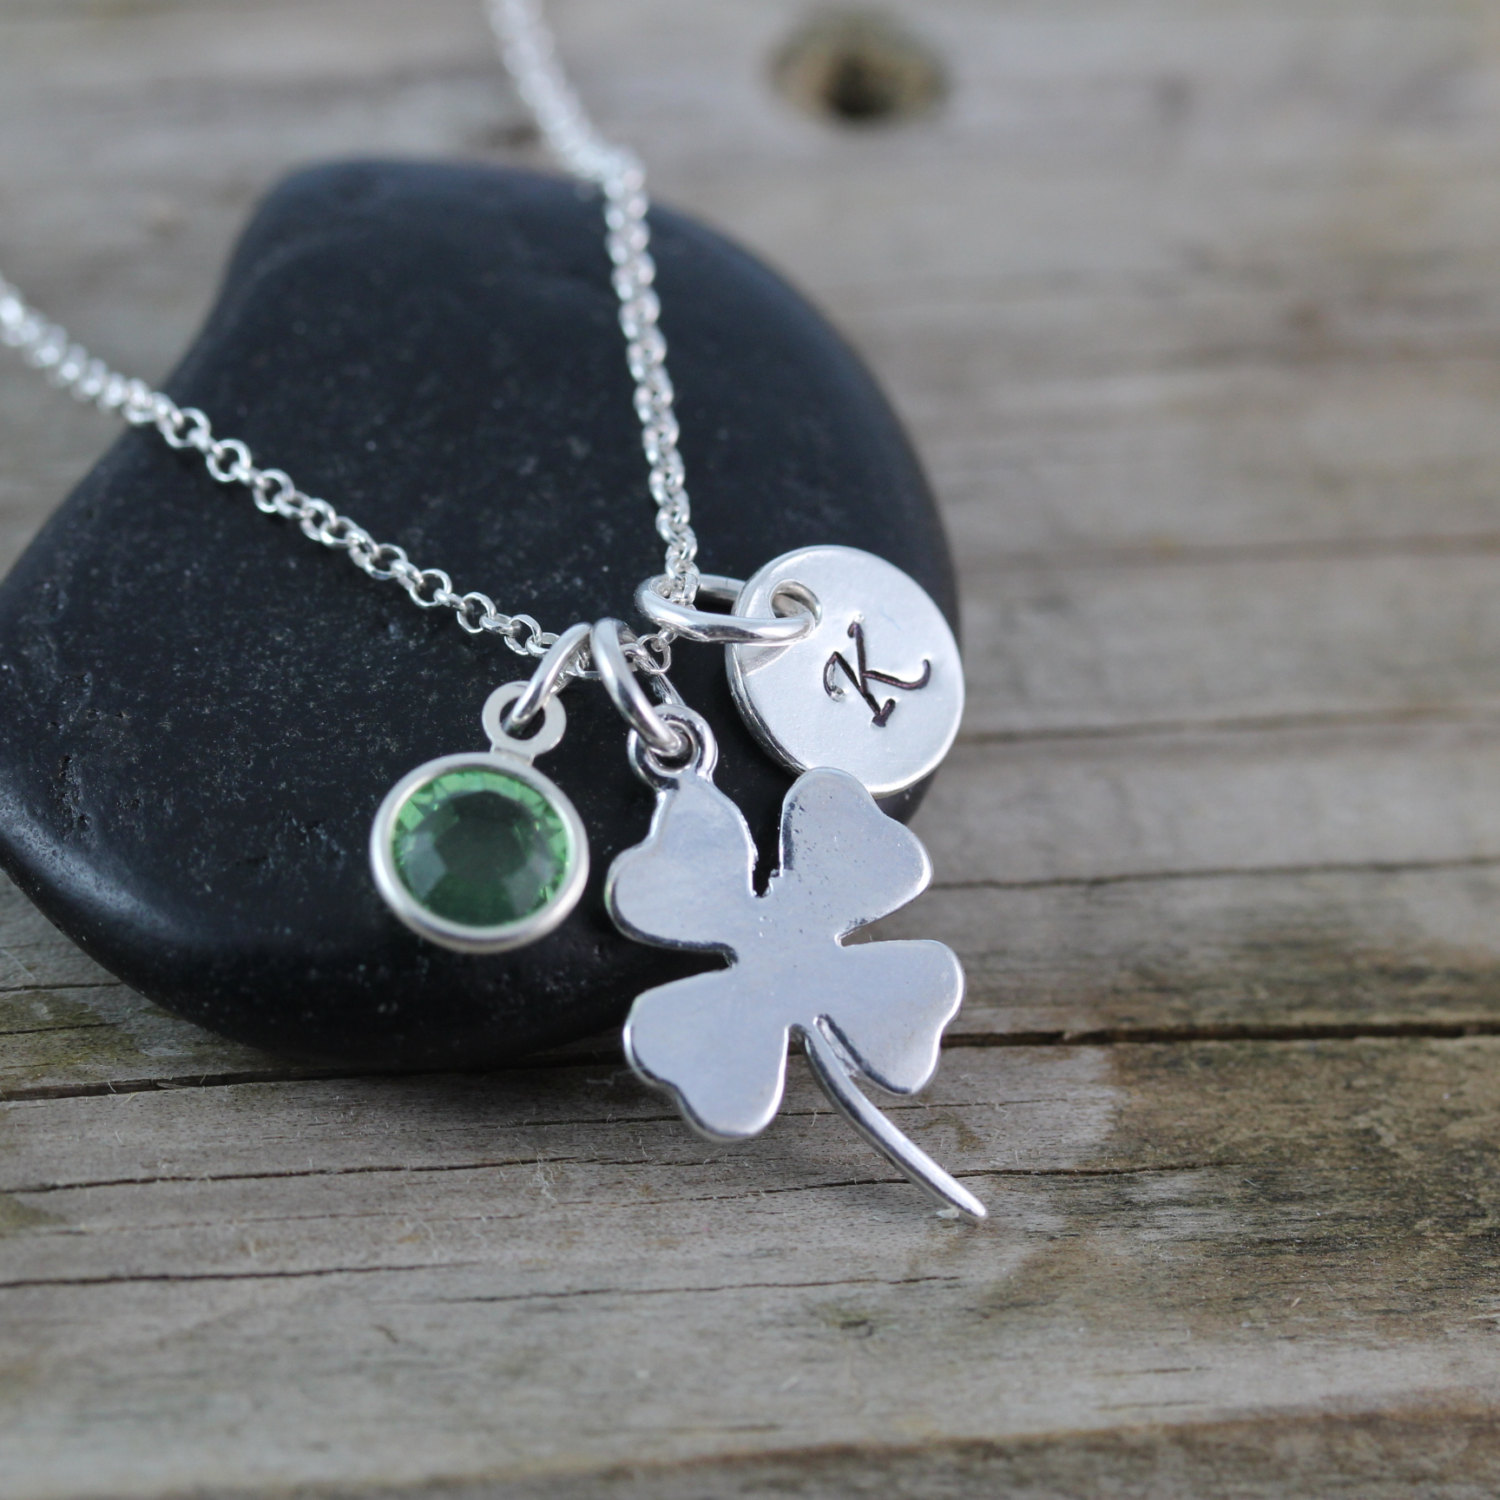 17 Lovely Handmade Jewelry Pieces For St Patrick S Day